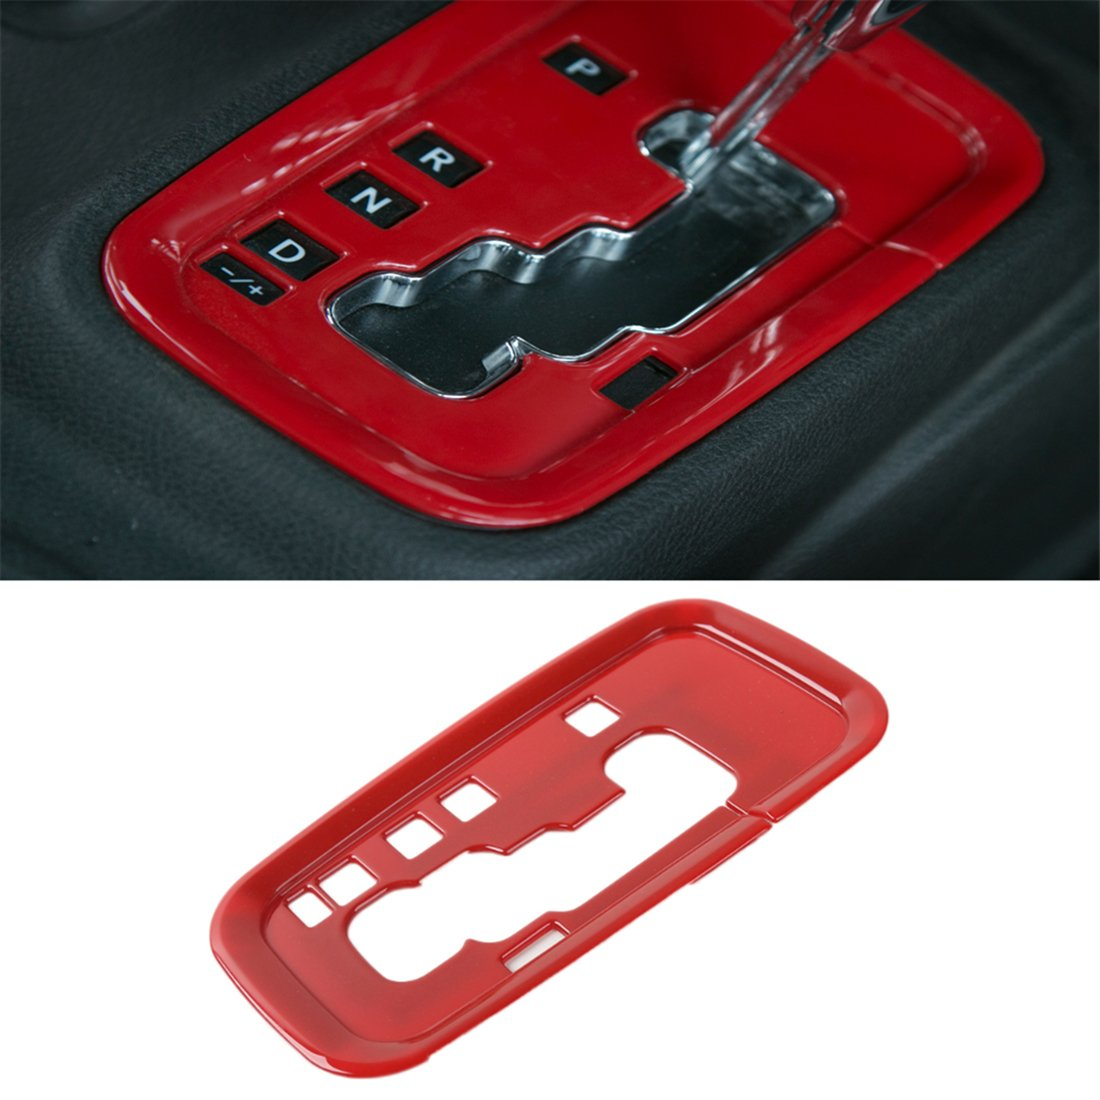 YOCTM Car Gear Shift Plate Shifter Transfer Full Cover Decoration Interior Trims Carbon Fiber Look ABS for Jeep Wrangler 2011-2017 Car Styling Accessories